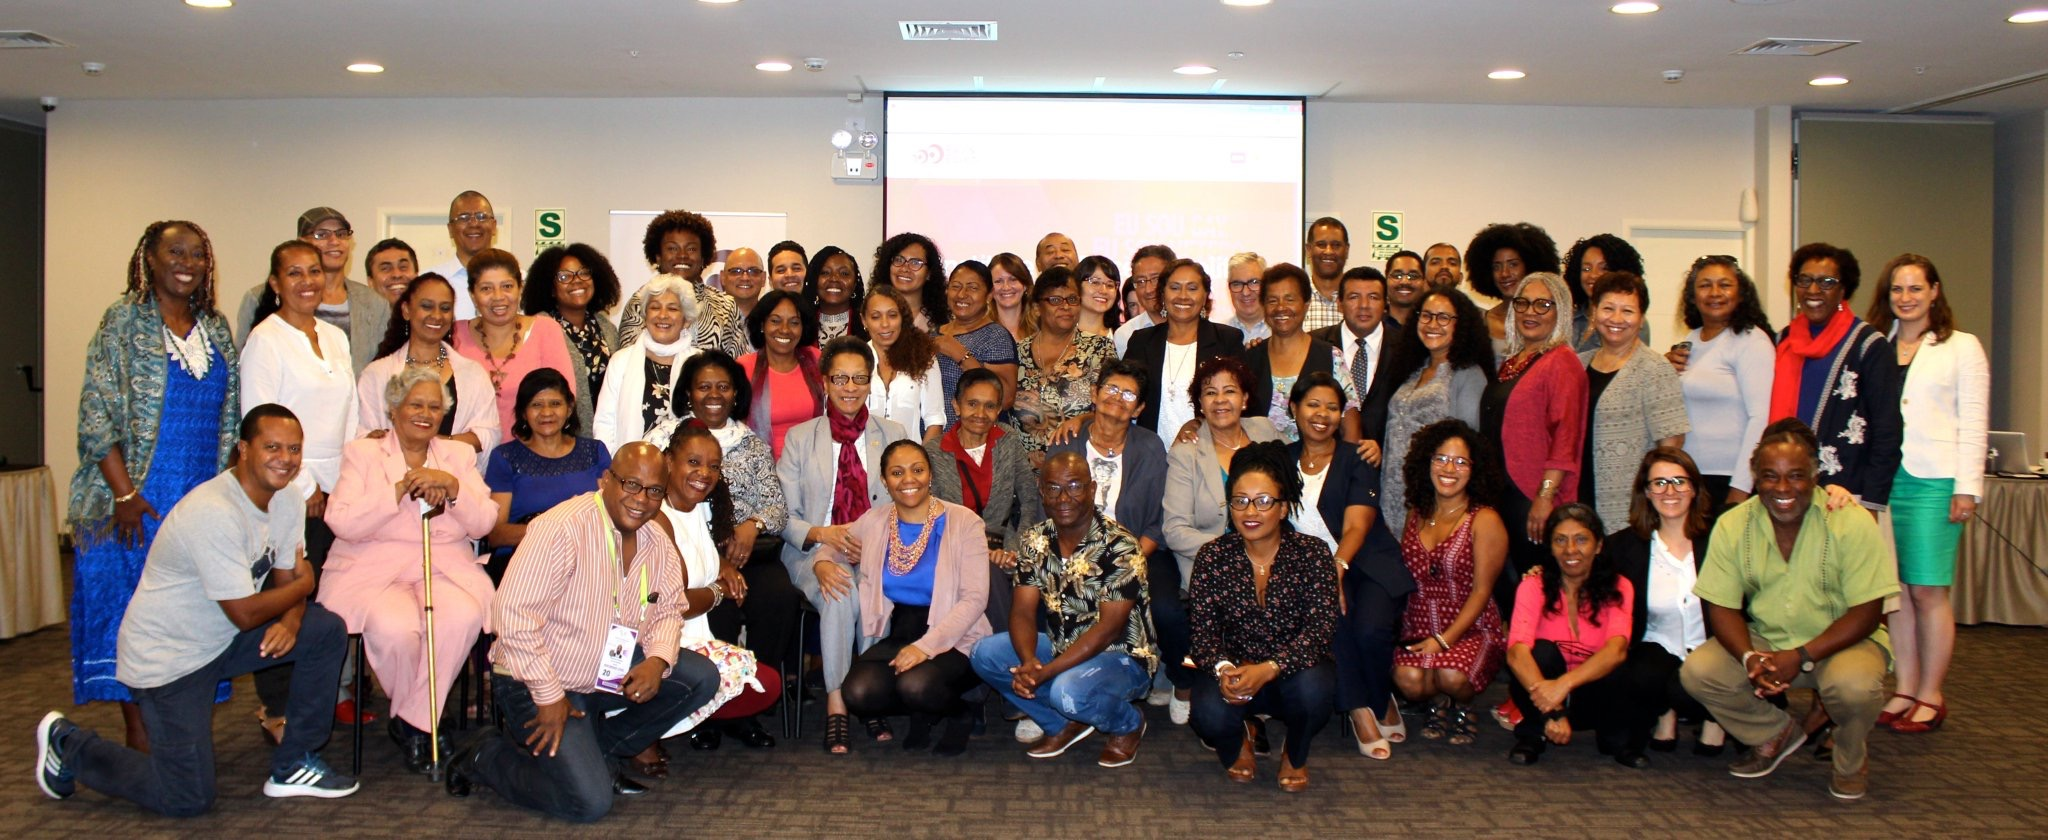 Inter-American Forum against Discrimination: Afro-descendant movement demands OAS member states to ratify the Inter-American Convention Against Racism and the creation of a Permanent Afro-descendant Forum at the OAS